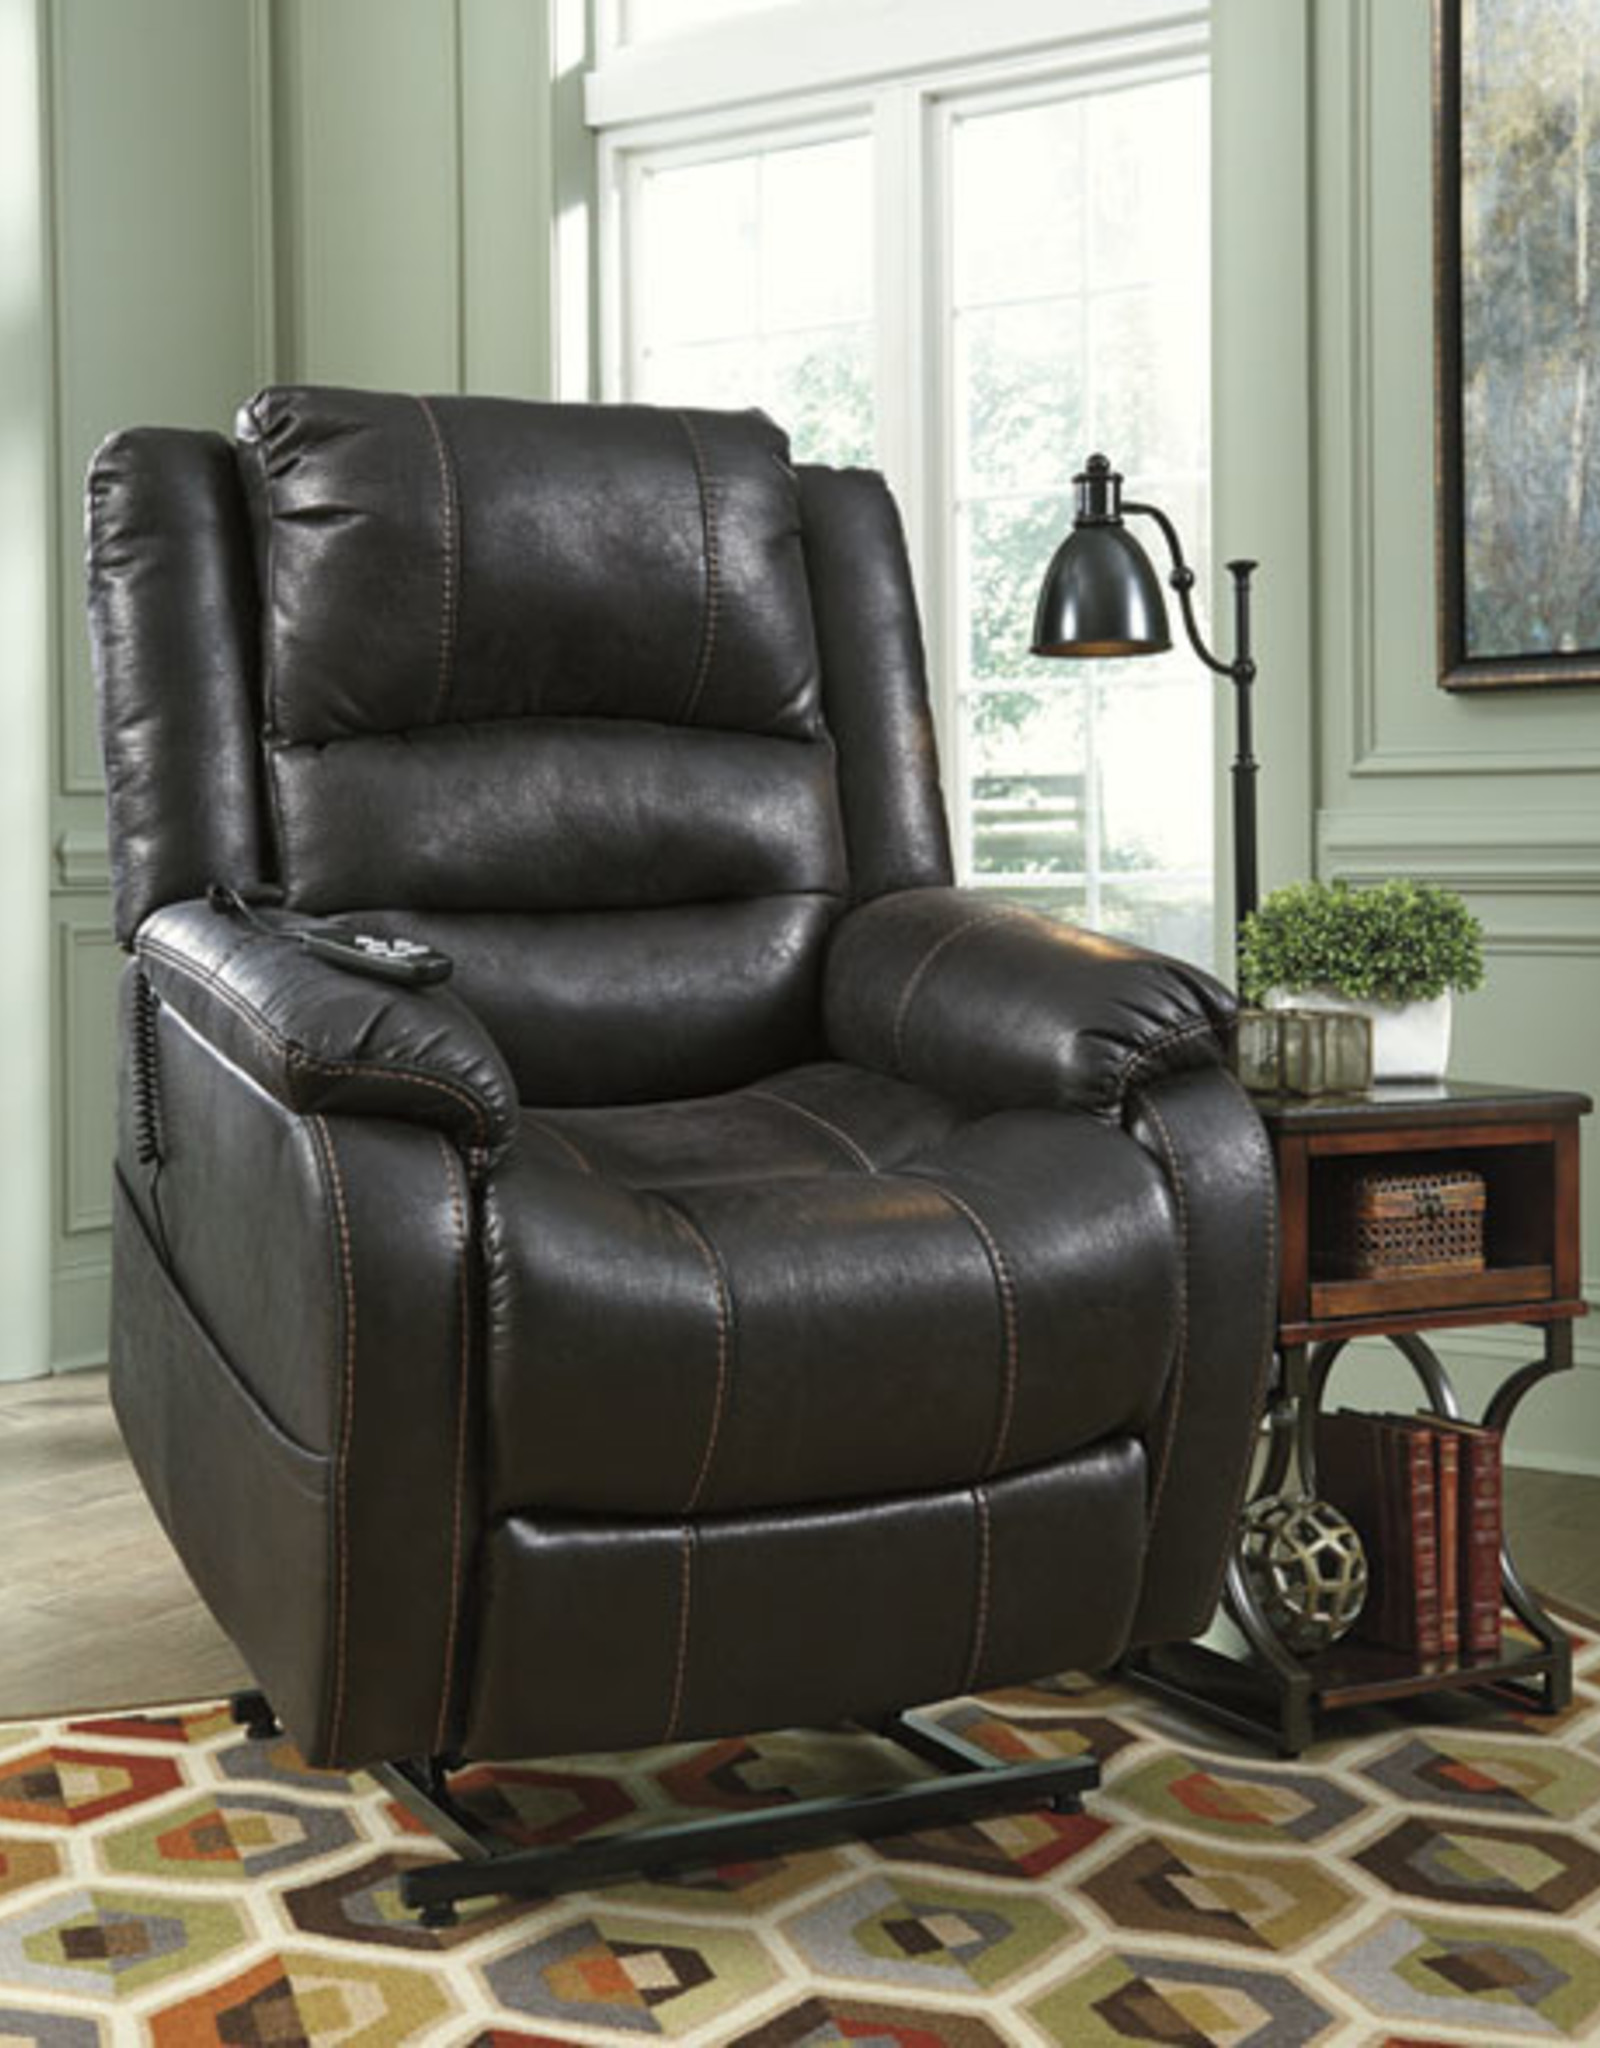 Yandel Power Lift Recliner (Black) - Online Only